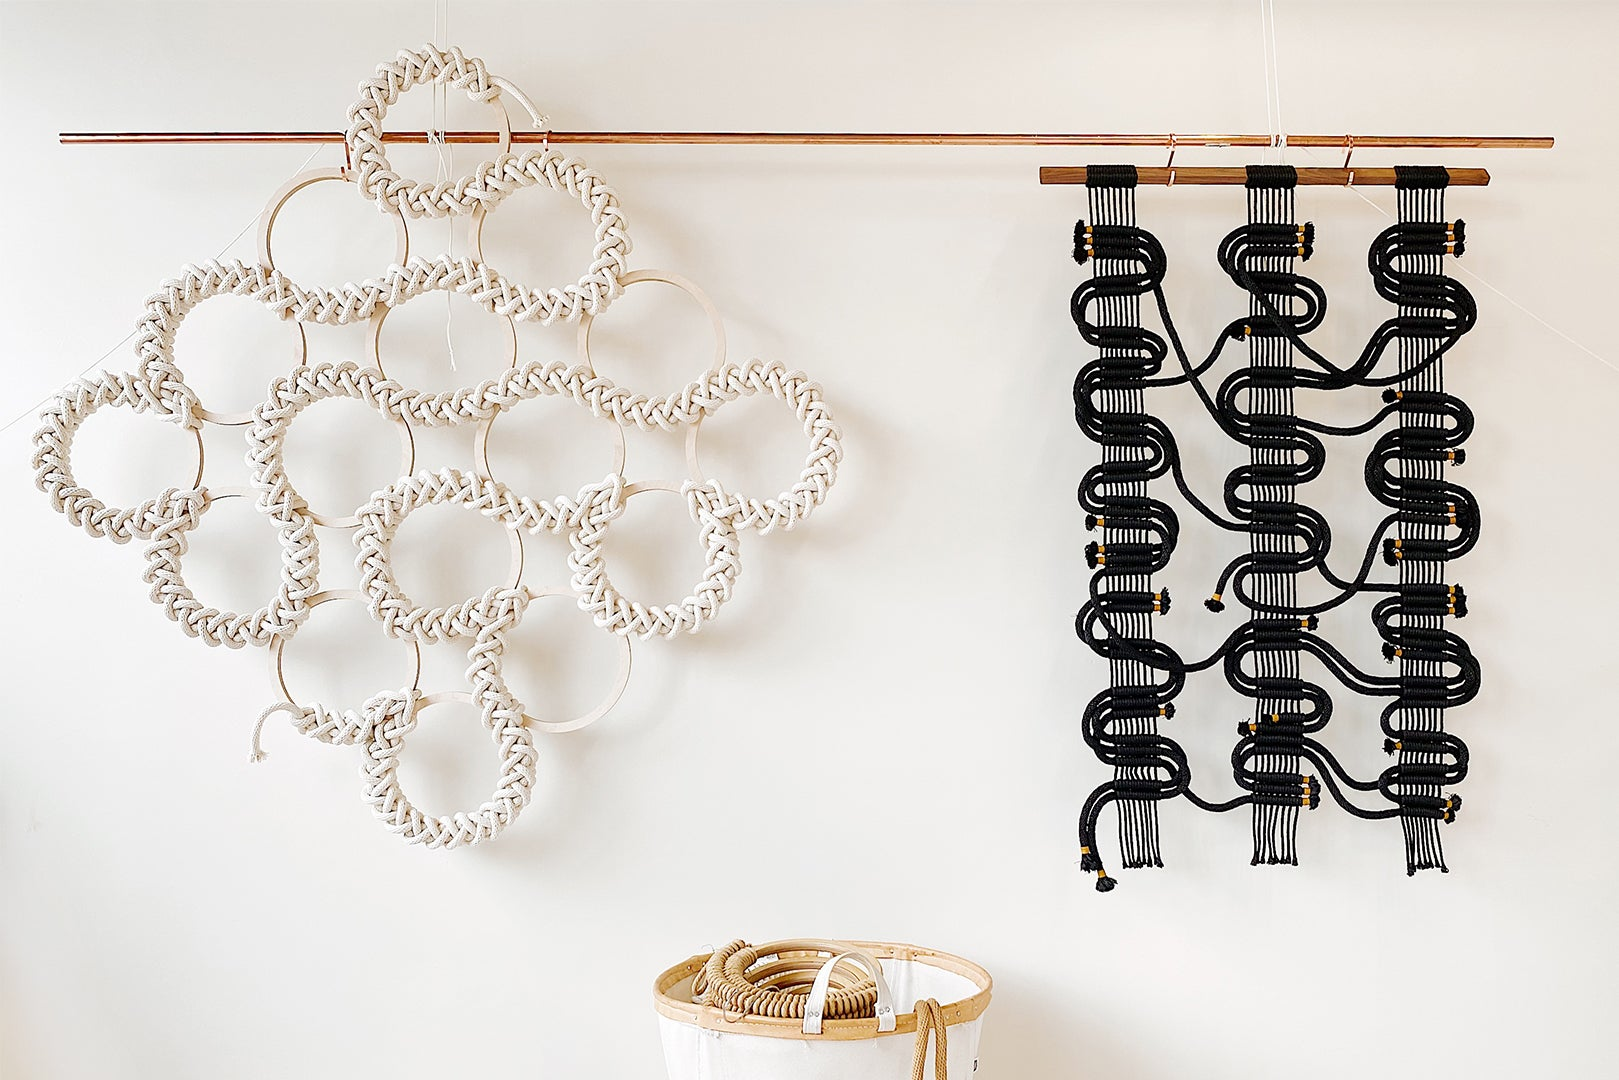 Knot art hanging on white wall